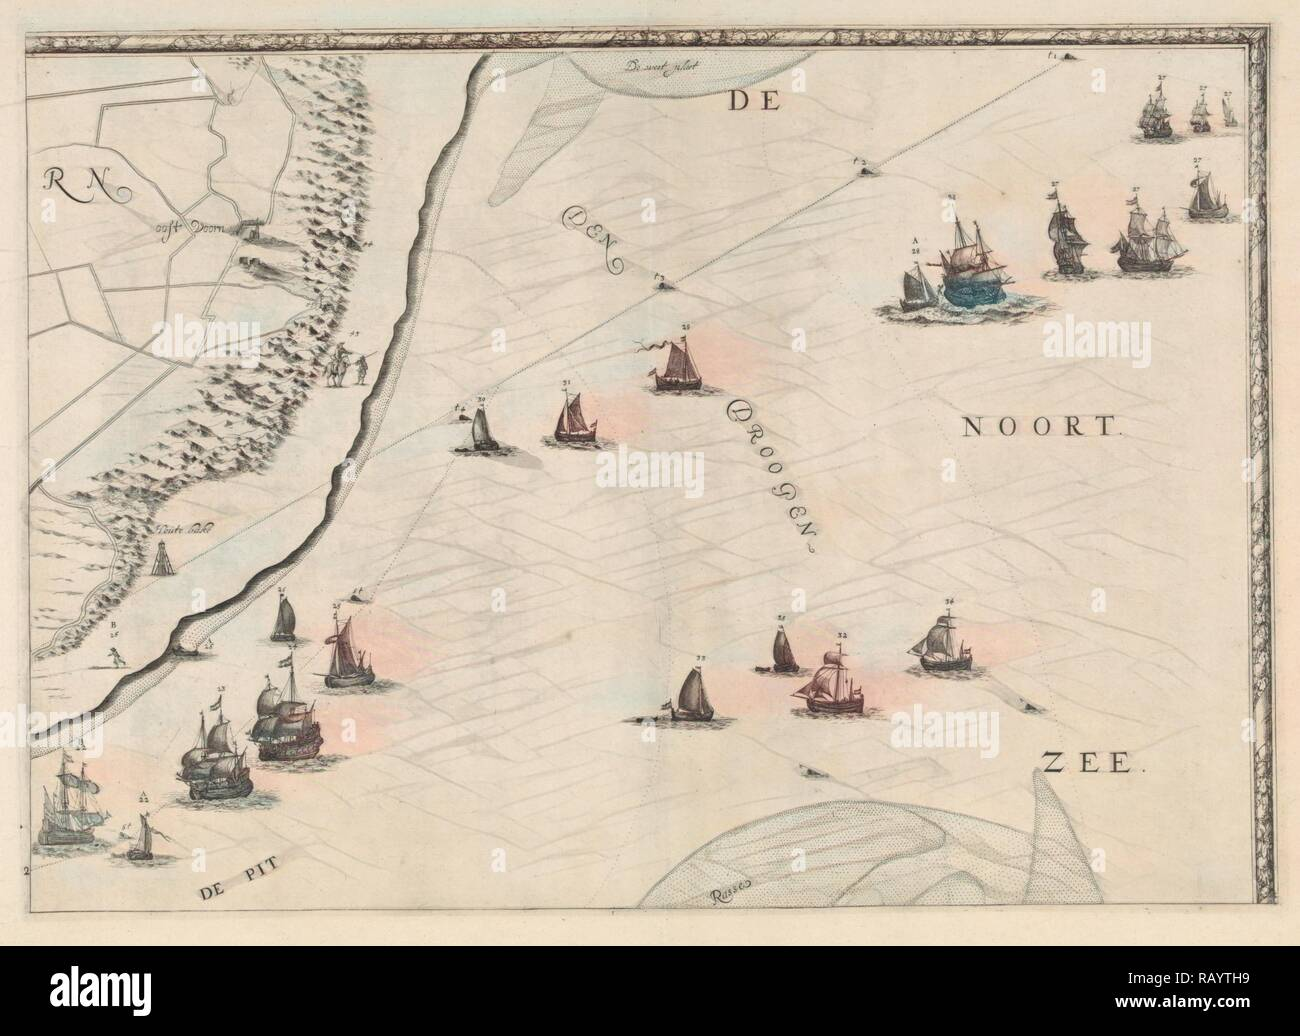 Map of the North Sea and the coast of Holland, Jacob Quack, 1665. Reimagined by Gibon. Classic art with a modern reimagined - Stock Image